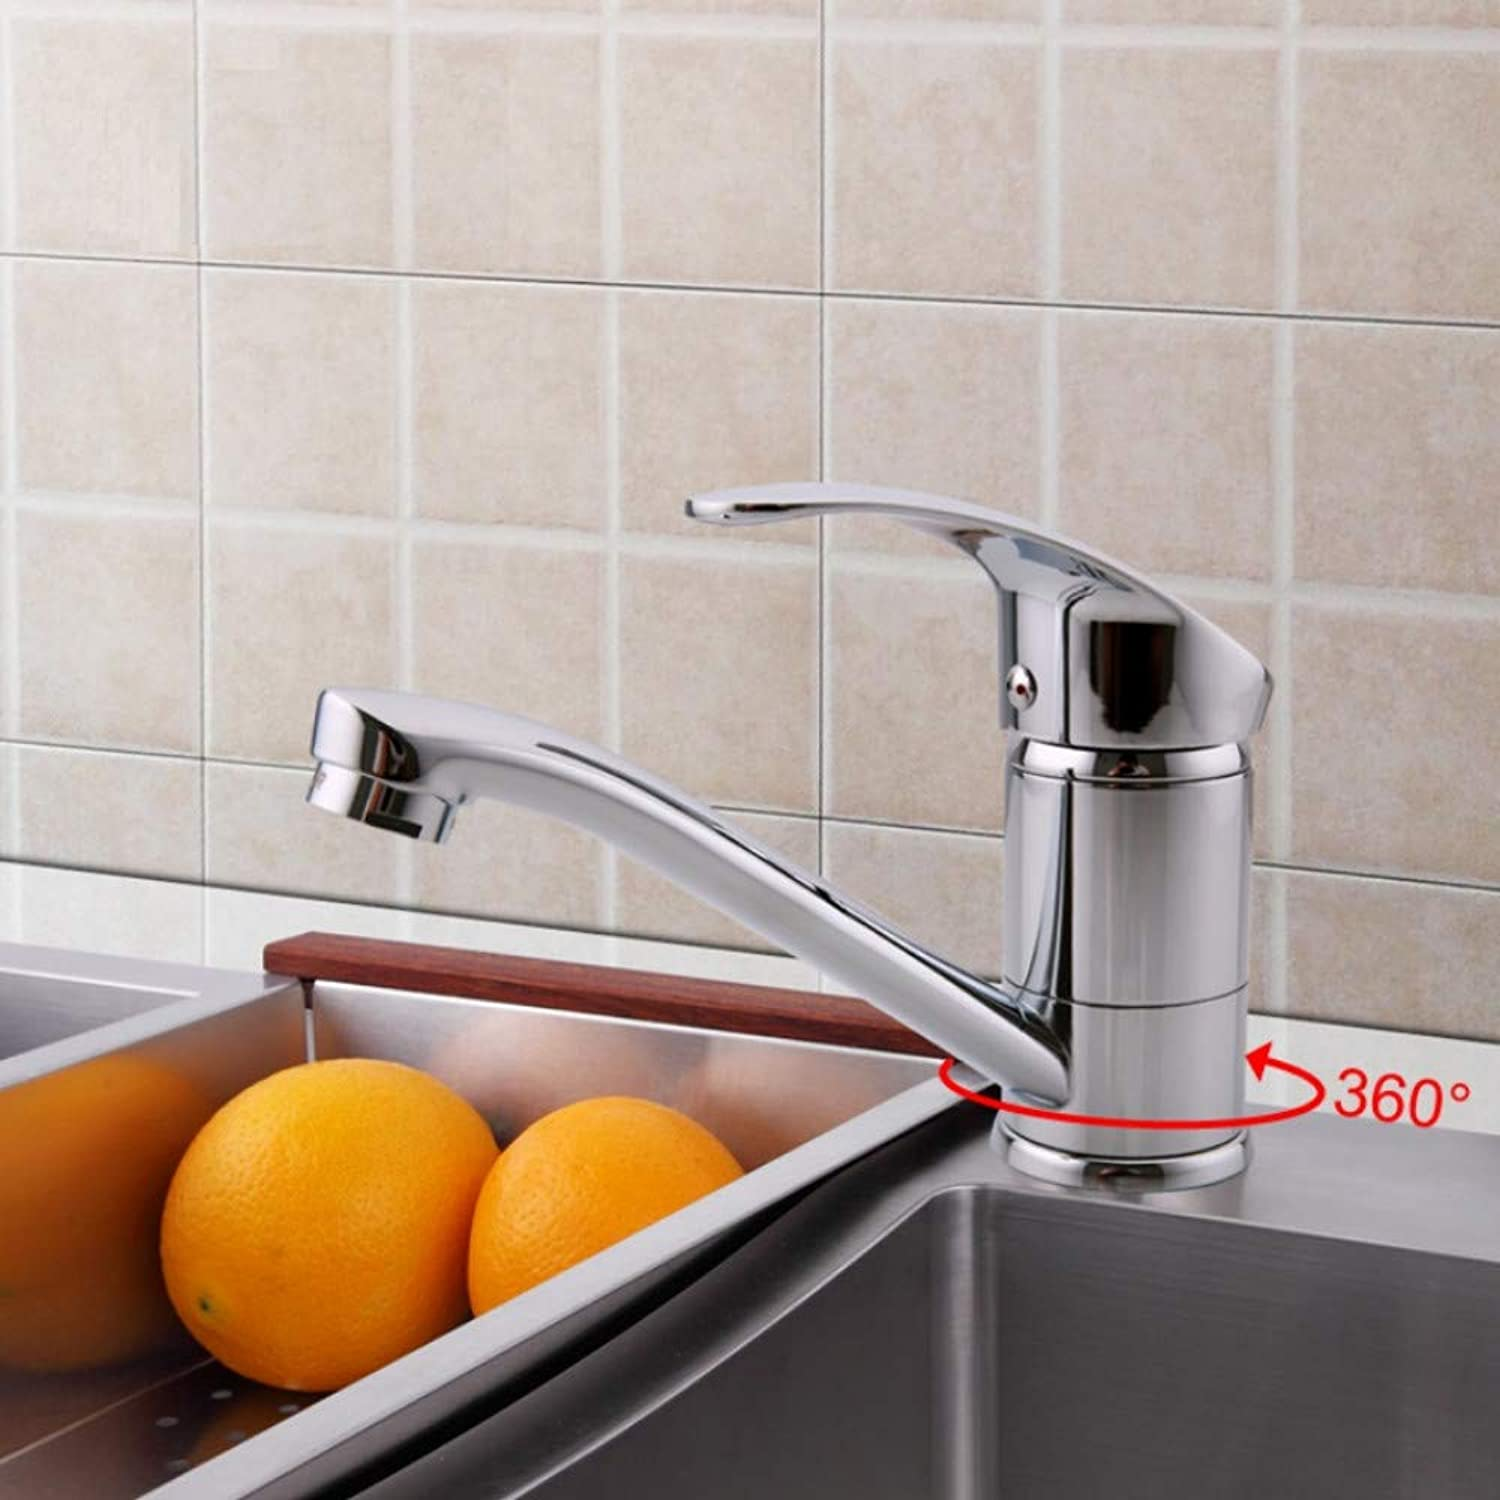 Mzdpp Modern Chrome Finish Silver Kitchen Faucet Single Handle Hot and Cold Water 360 redation